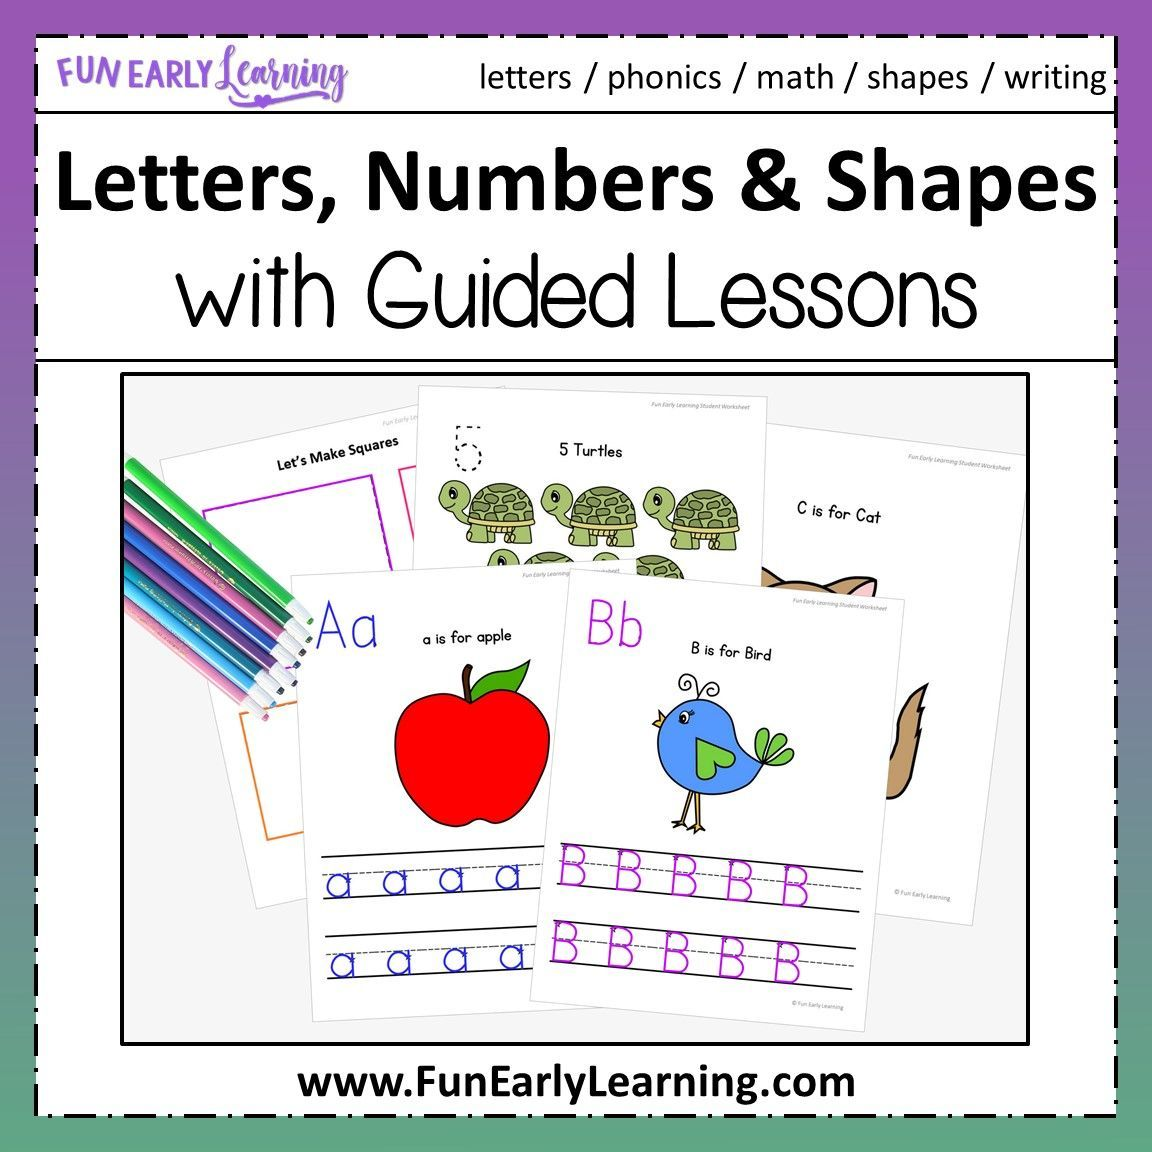 Pin On Fun Early Learning Activities